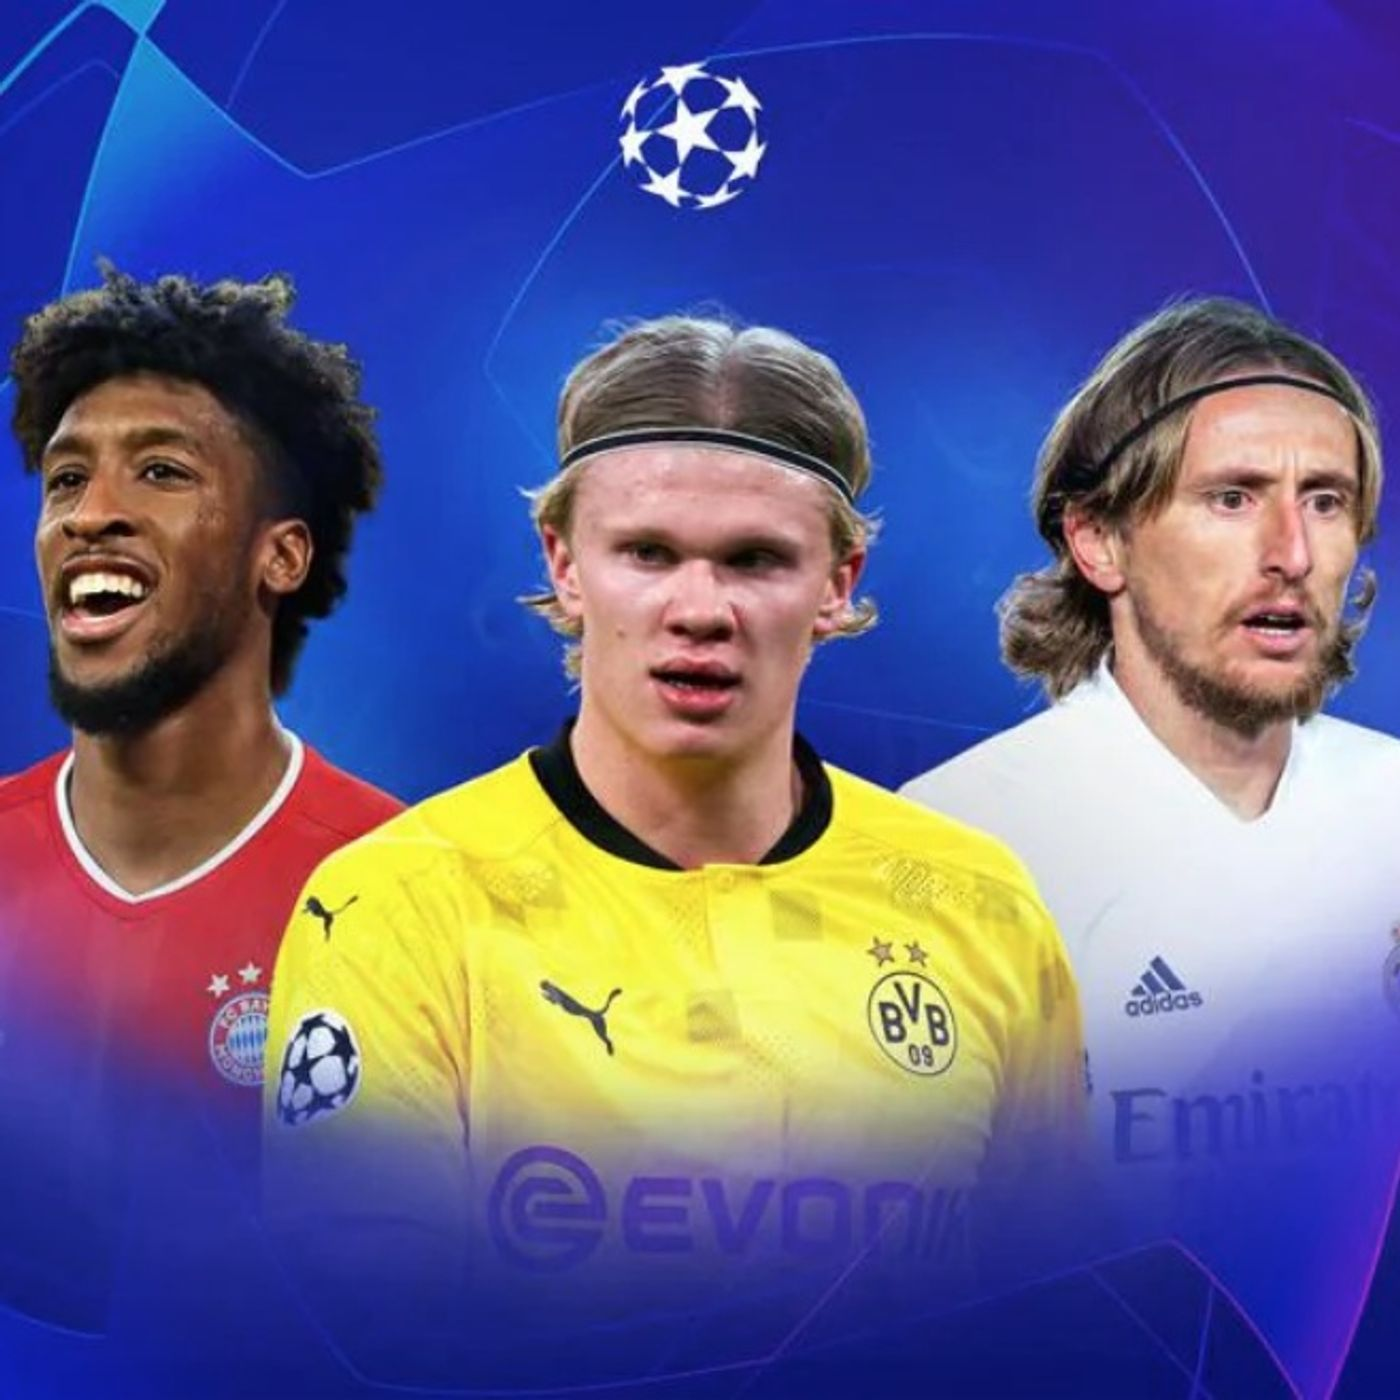 The UEFA Leagues: Betting Previews and Official Picks for Champions League & Europa League (04/06 - 04/08)